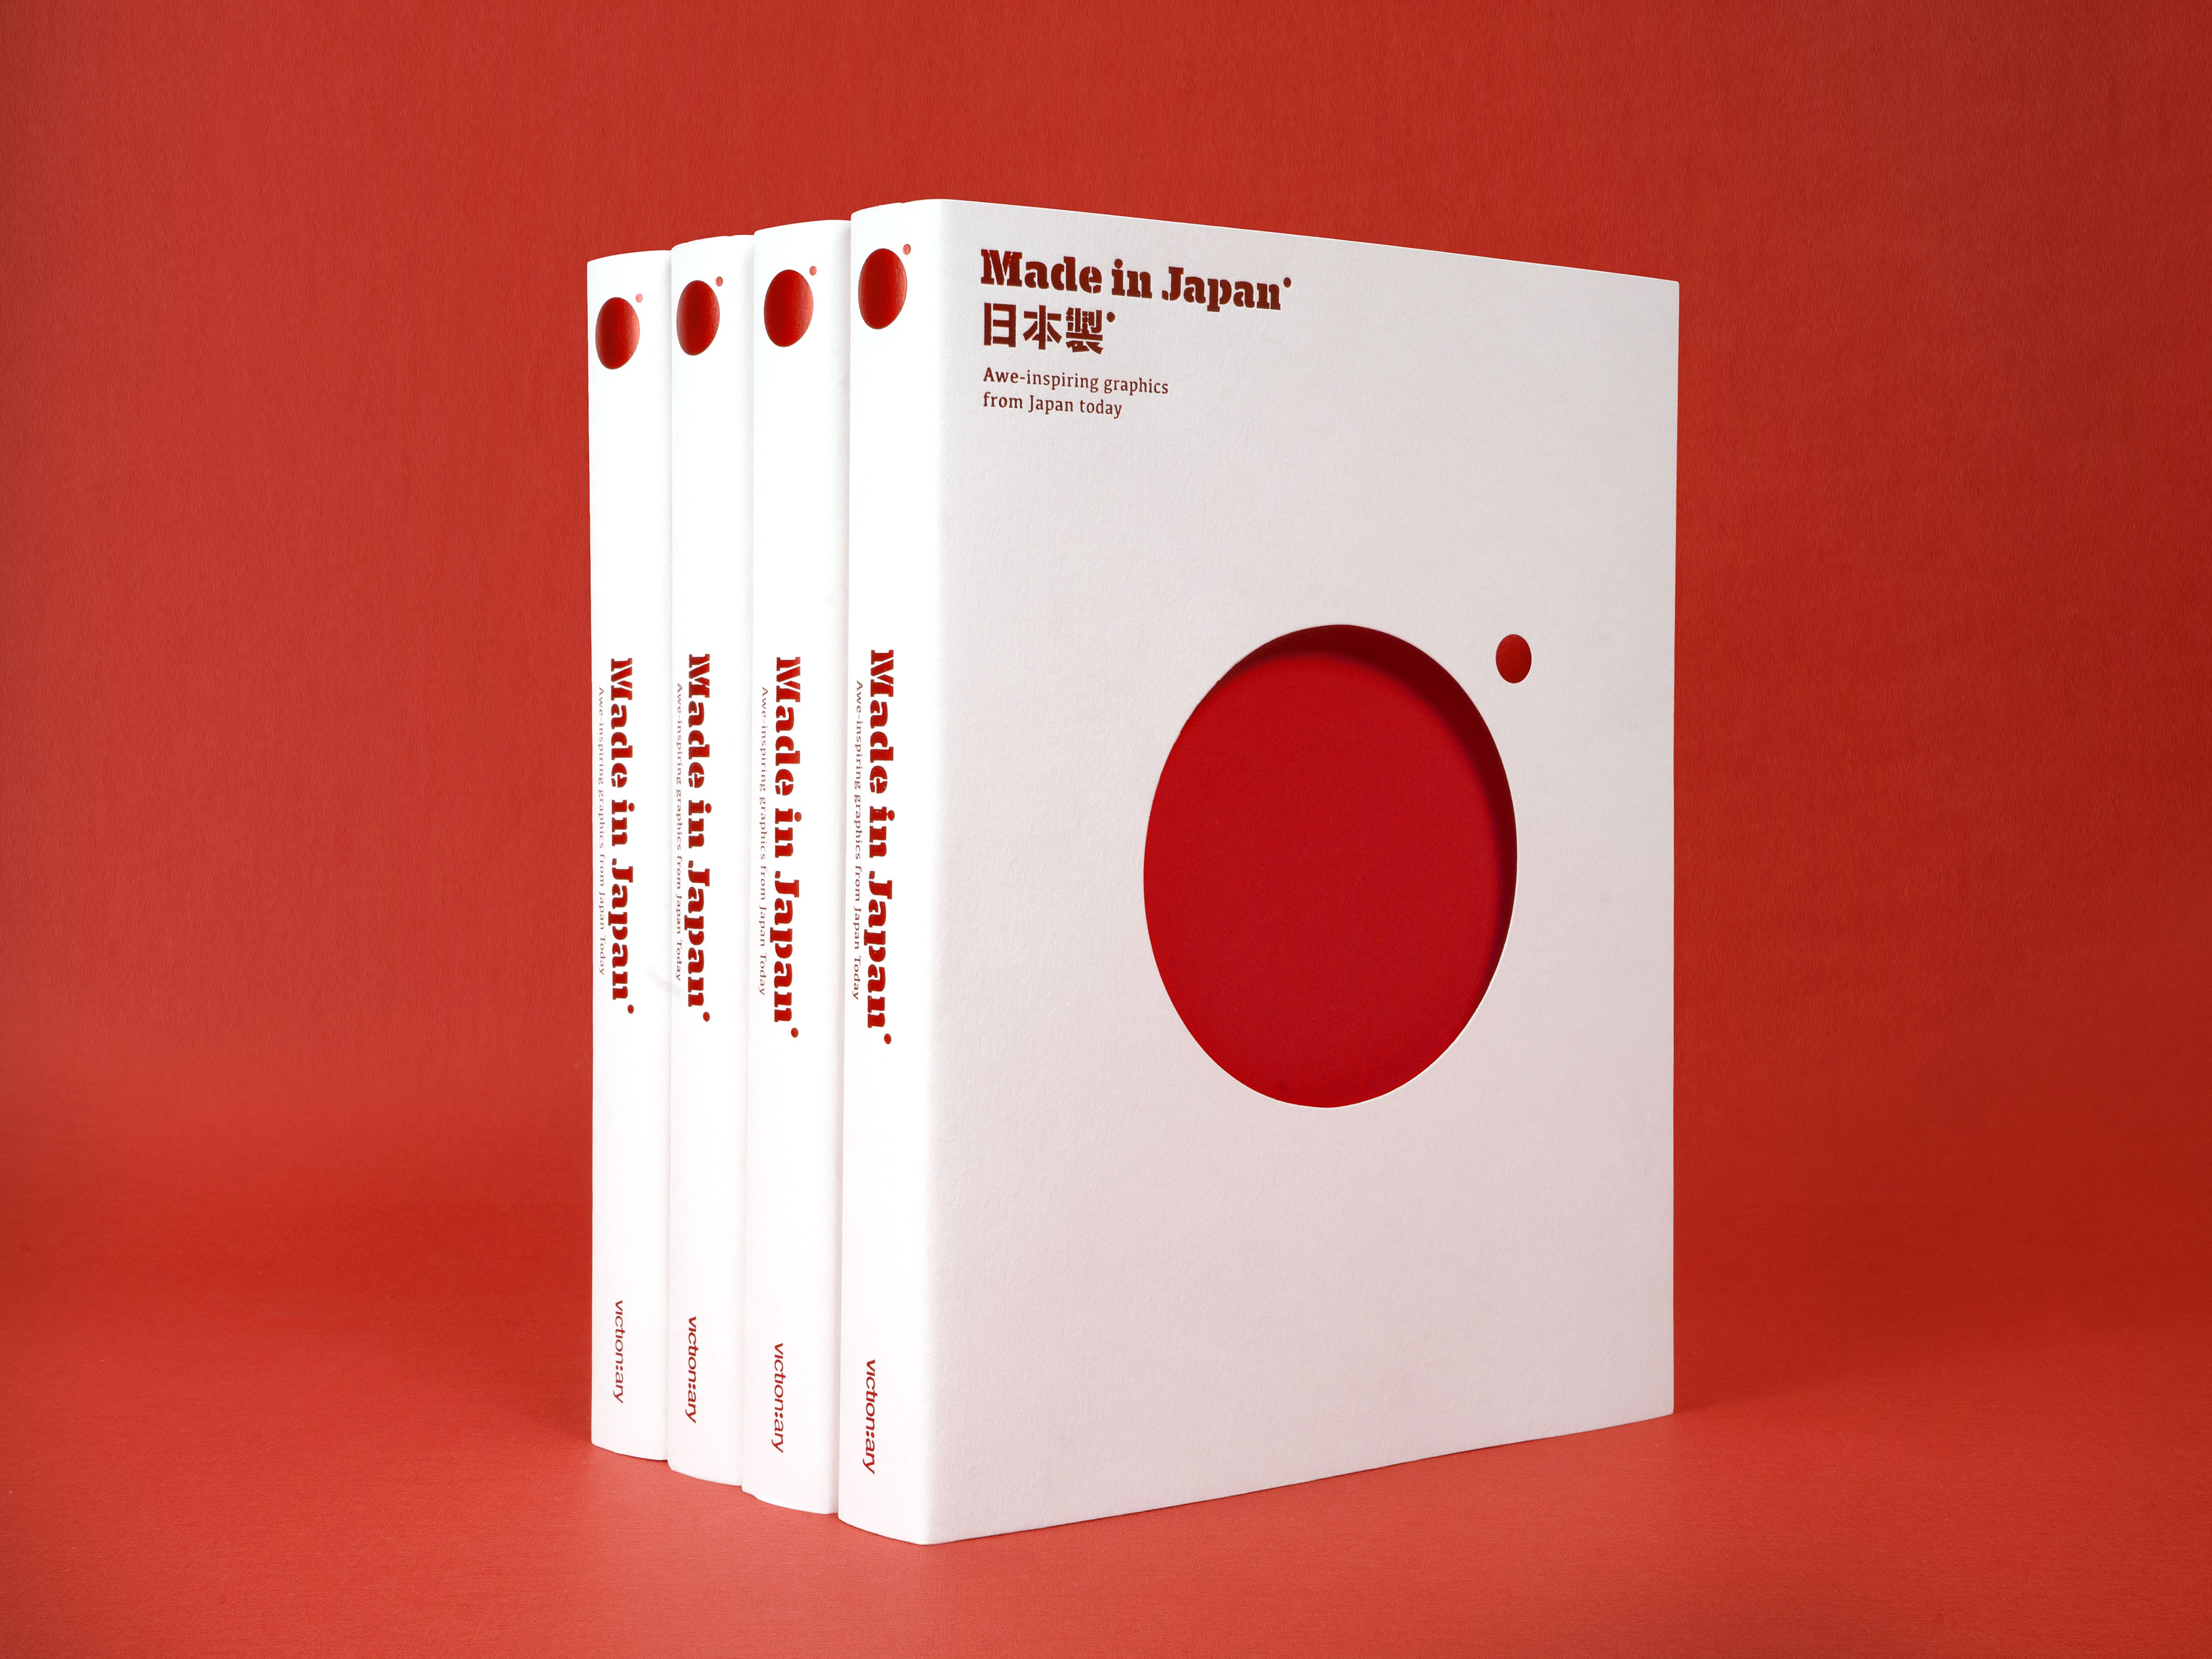 Made In Japan Awe Inspiring Graphics From Japan Today Minimalist Book Cover Design Graphic Design Book Cover Minimalist Book Cover